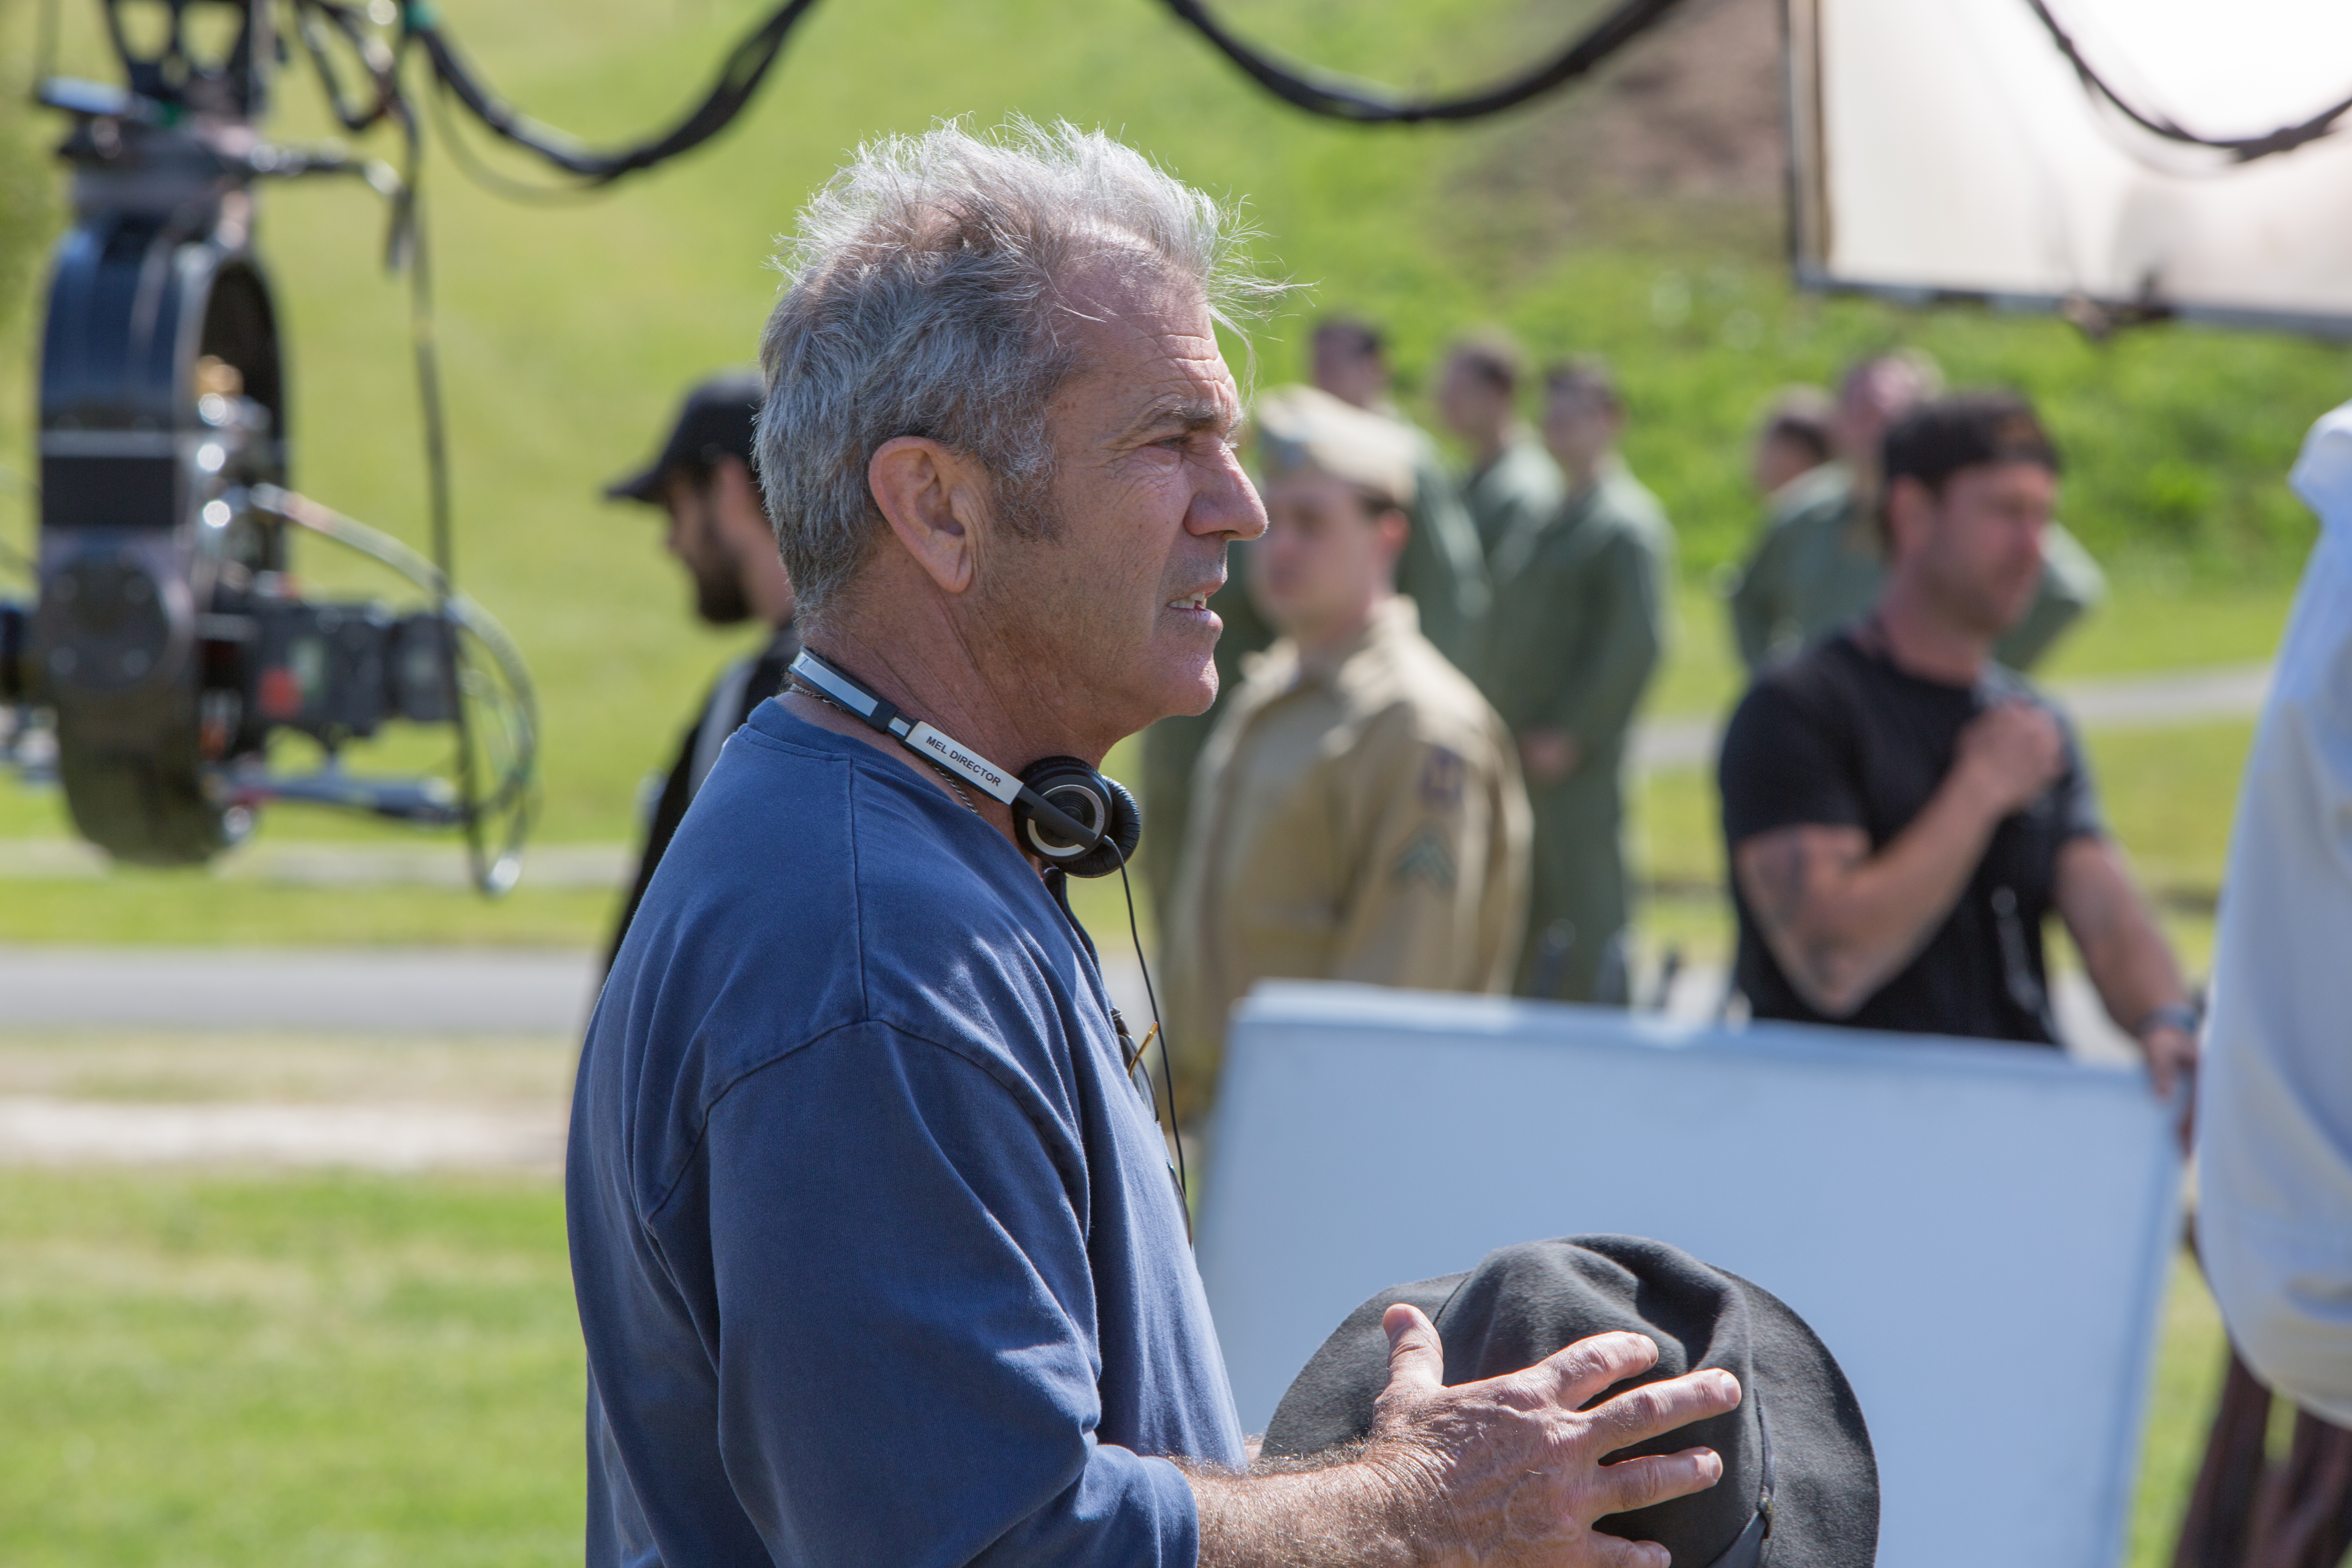 Mel Gibson on set during the making of the film Hacksaw Ridge. Lionsgate Films Photo